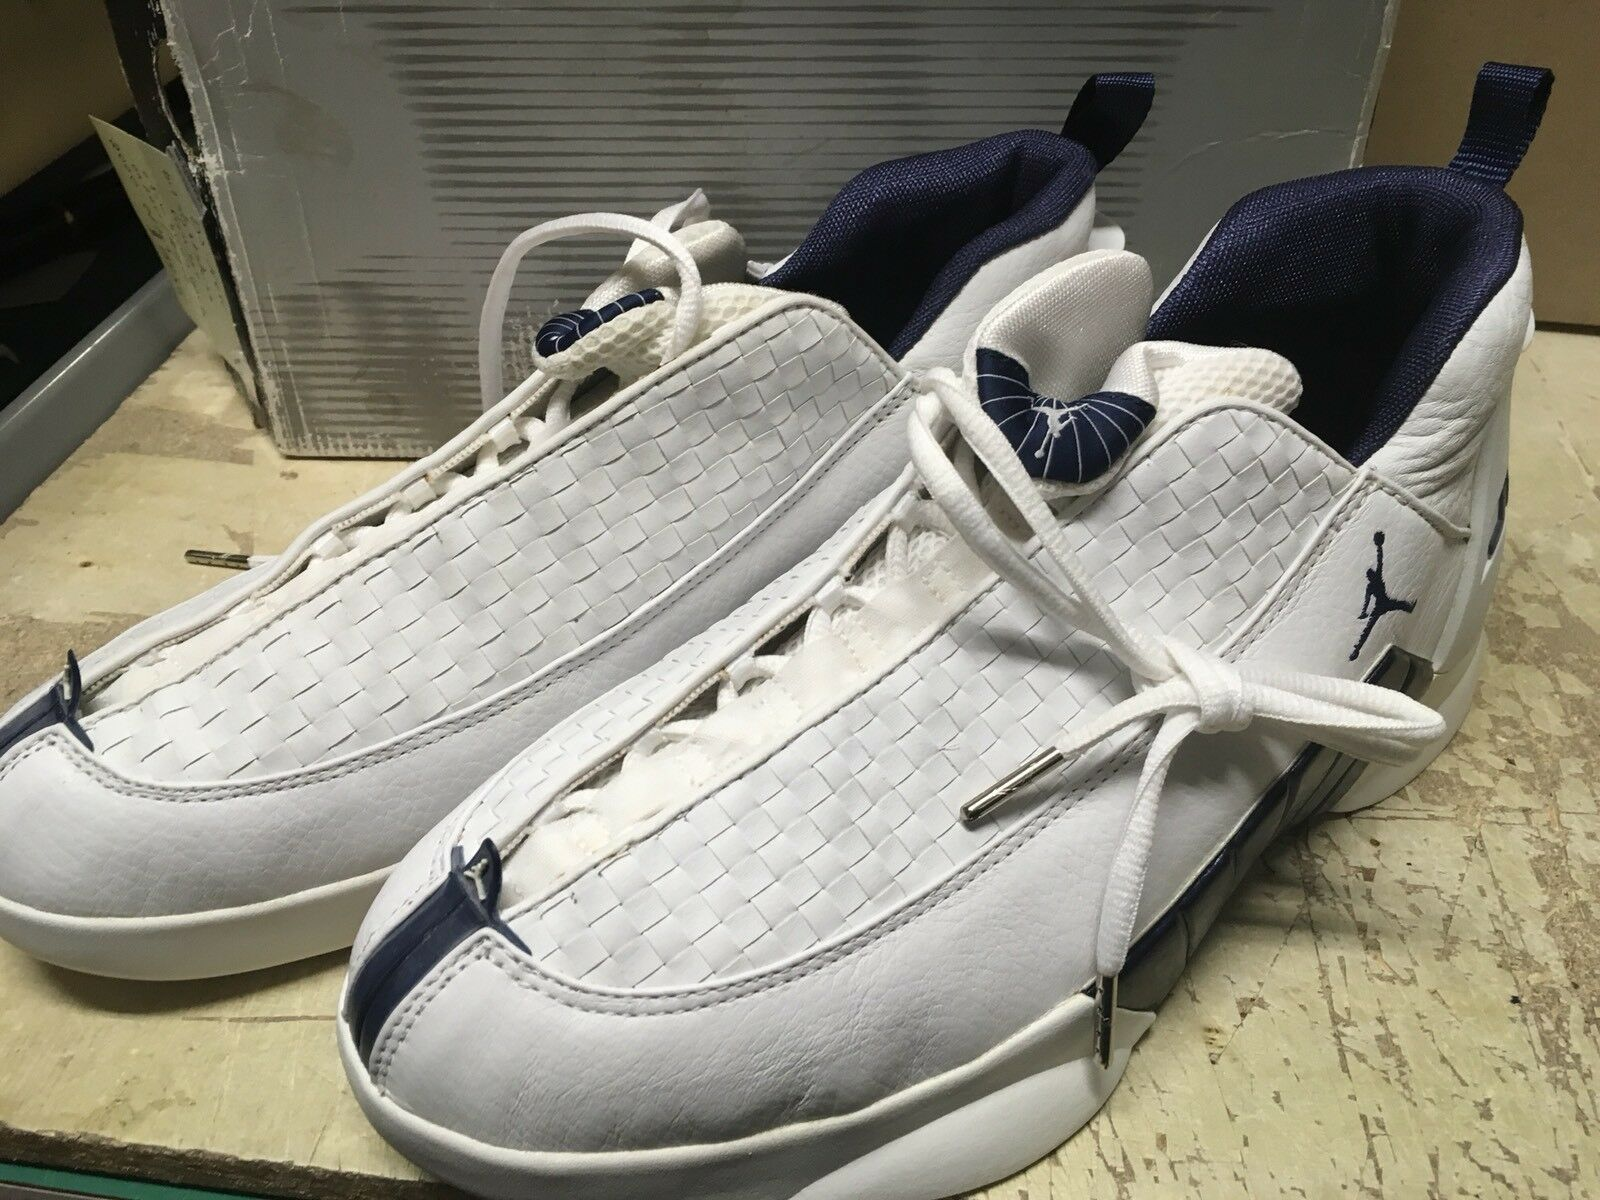 DS MENS NIKE AIR JORDAN XV LOW 2000 EDITION 136035 141 SZ 12 FREE AIR AGE STAINS